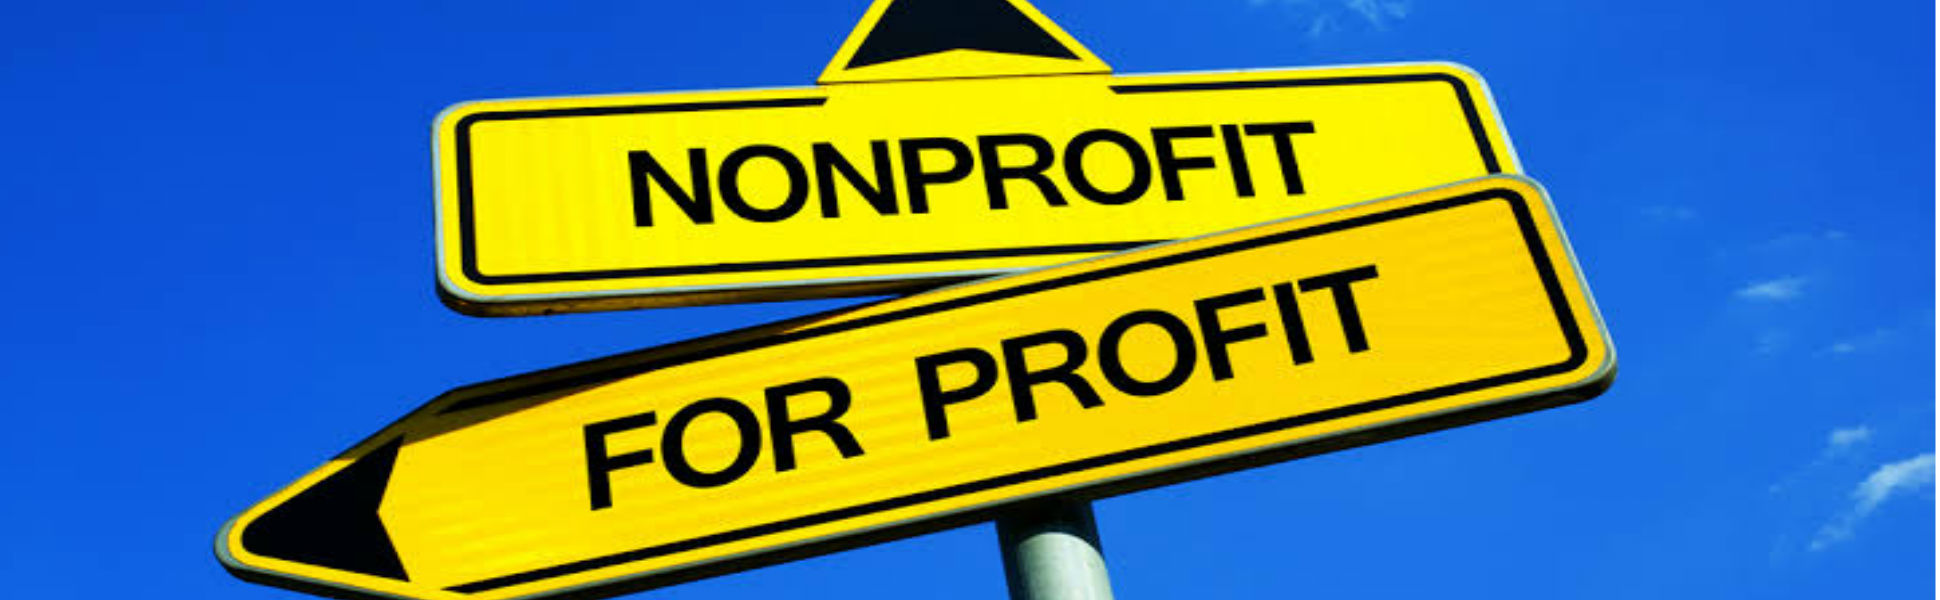 Three Impactful Lessons Non Profit can Learn from Commercial Businesses